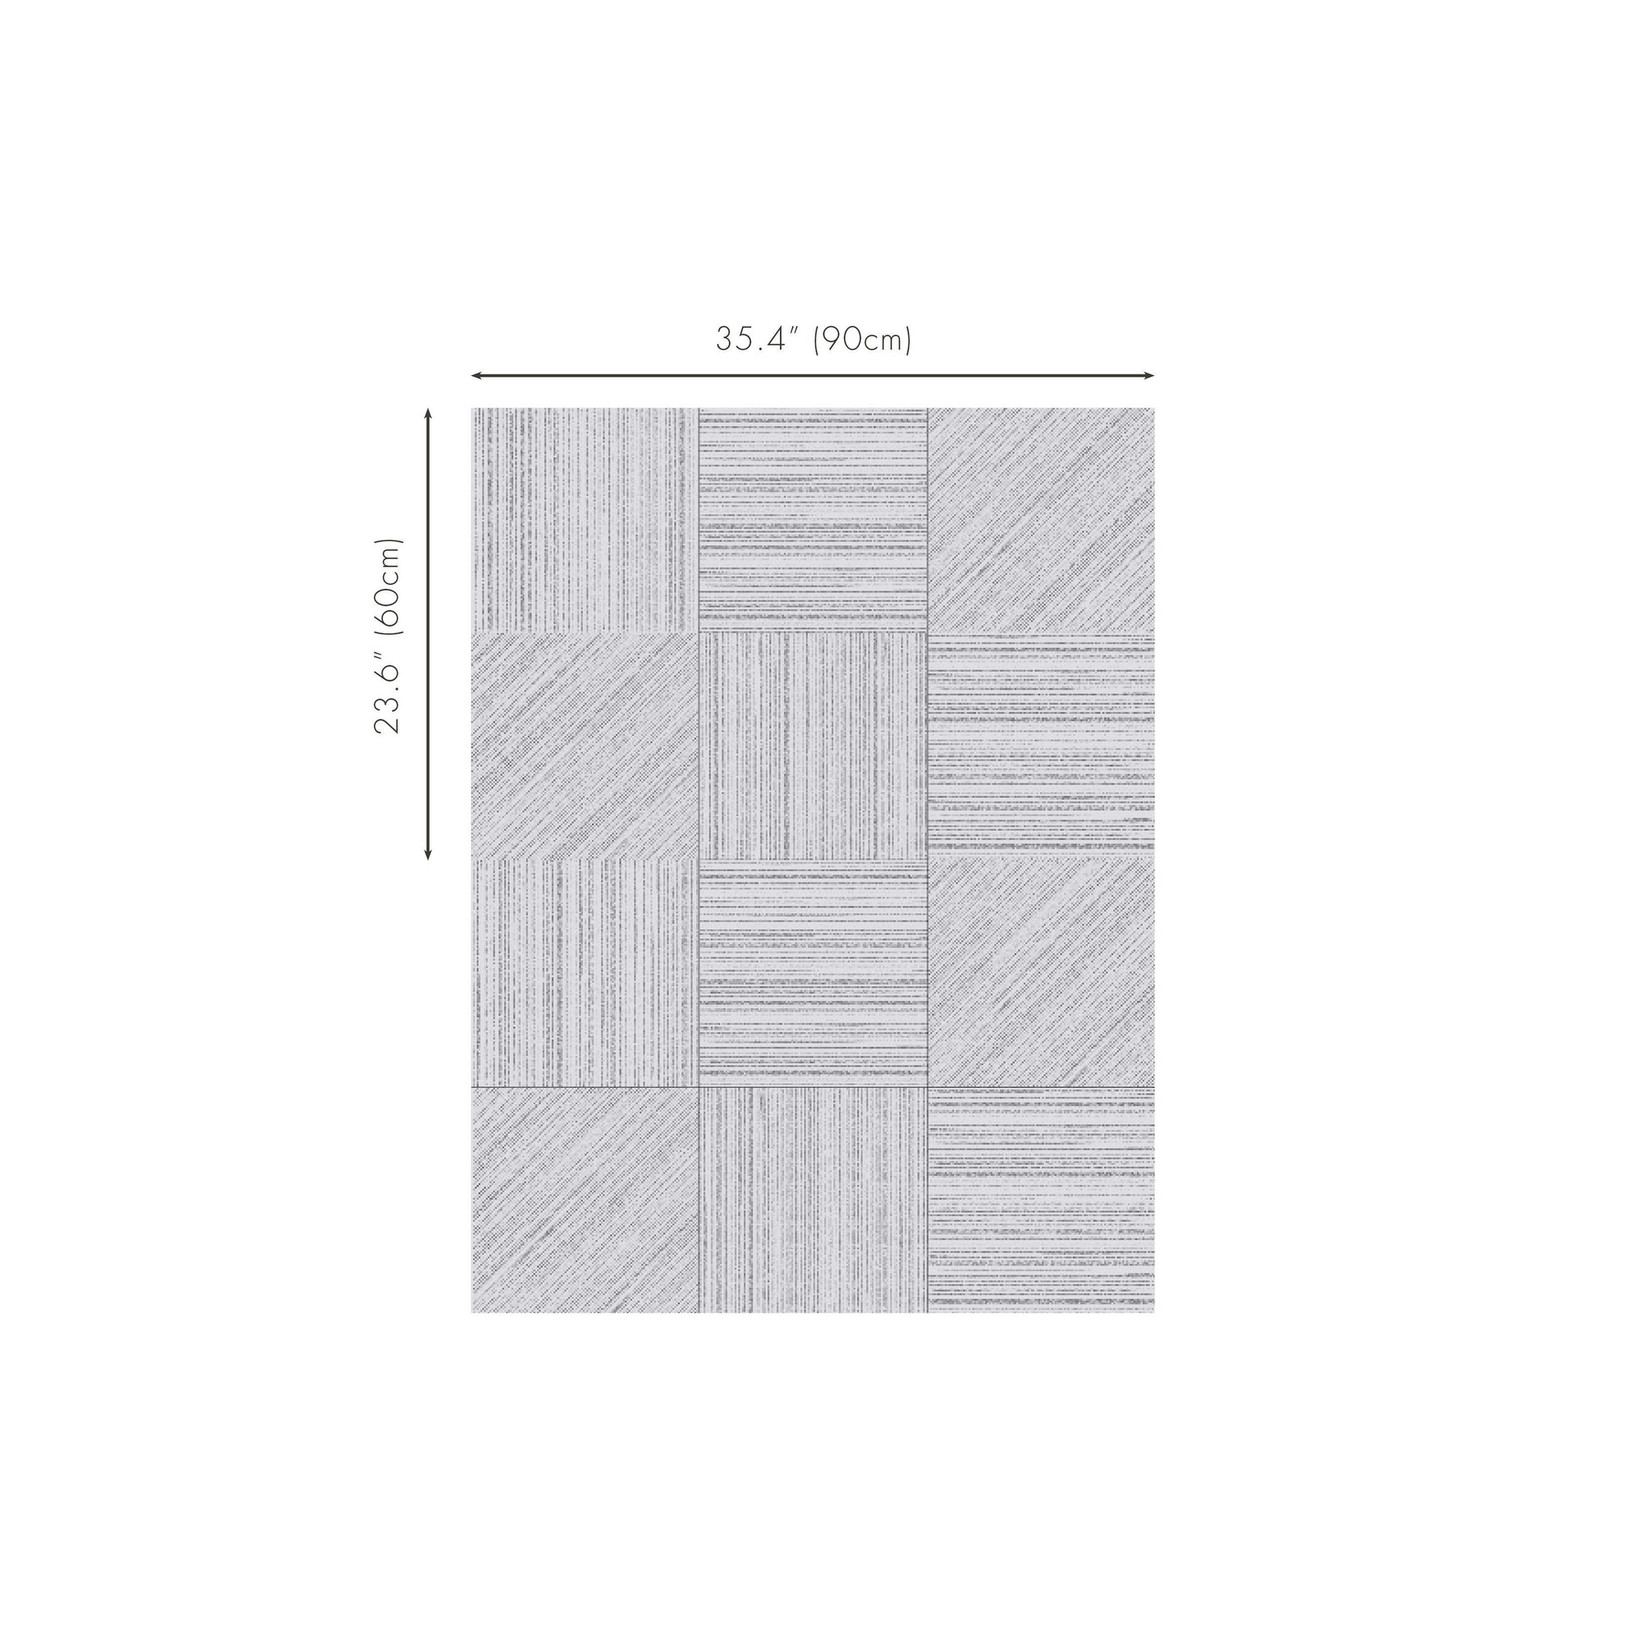 Mark Alexander Collage Handcrafted Wallcoverings | Square Cut Parchment